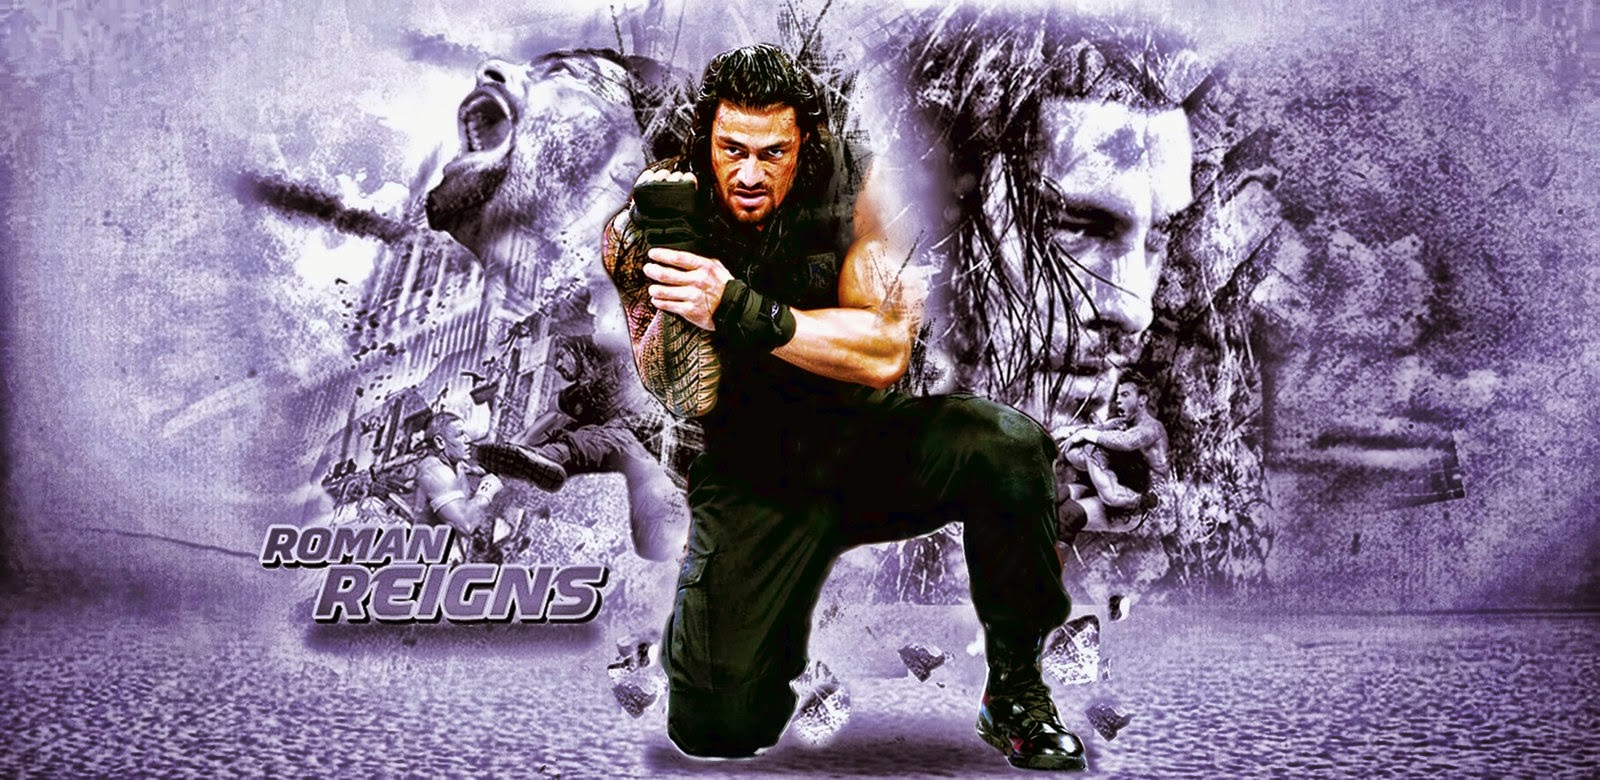 roman reigns wallpapers free download wwe wallpapers wwe images wwe wallpapers free download wwe superstars wallpapers